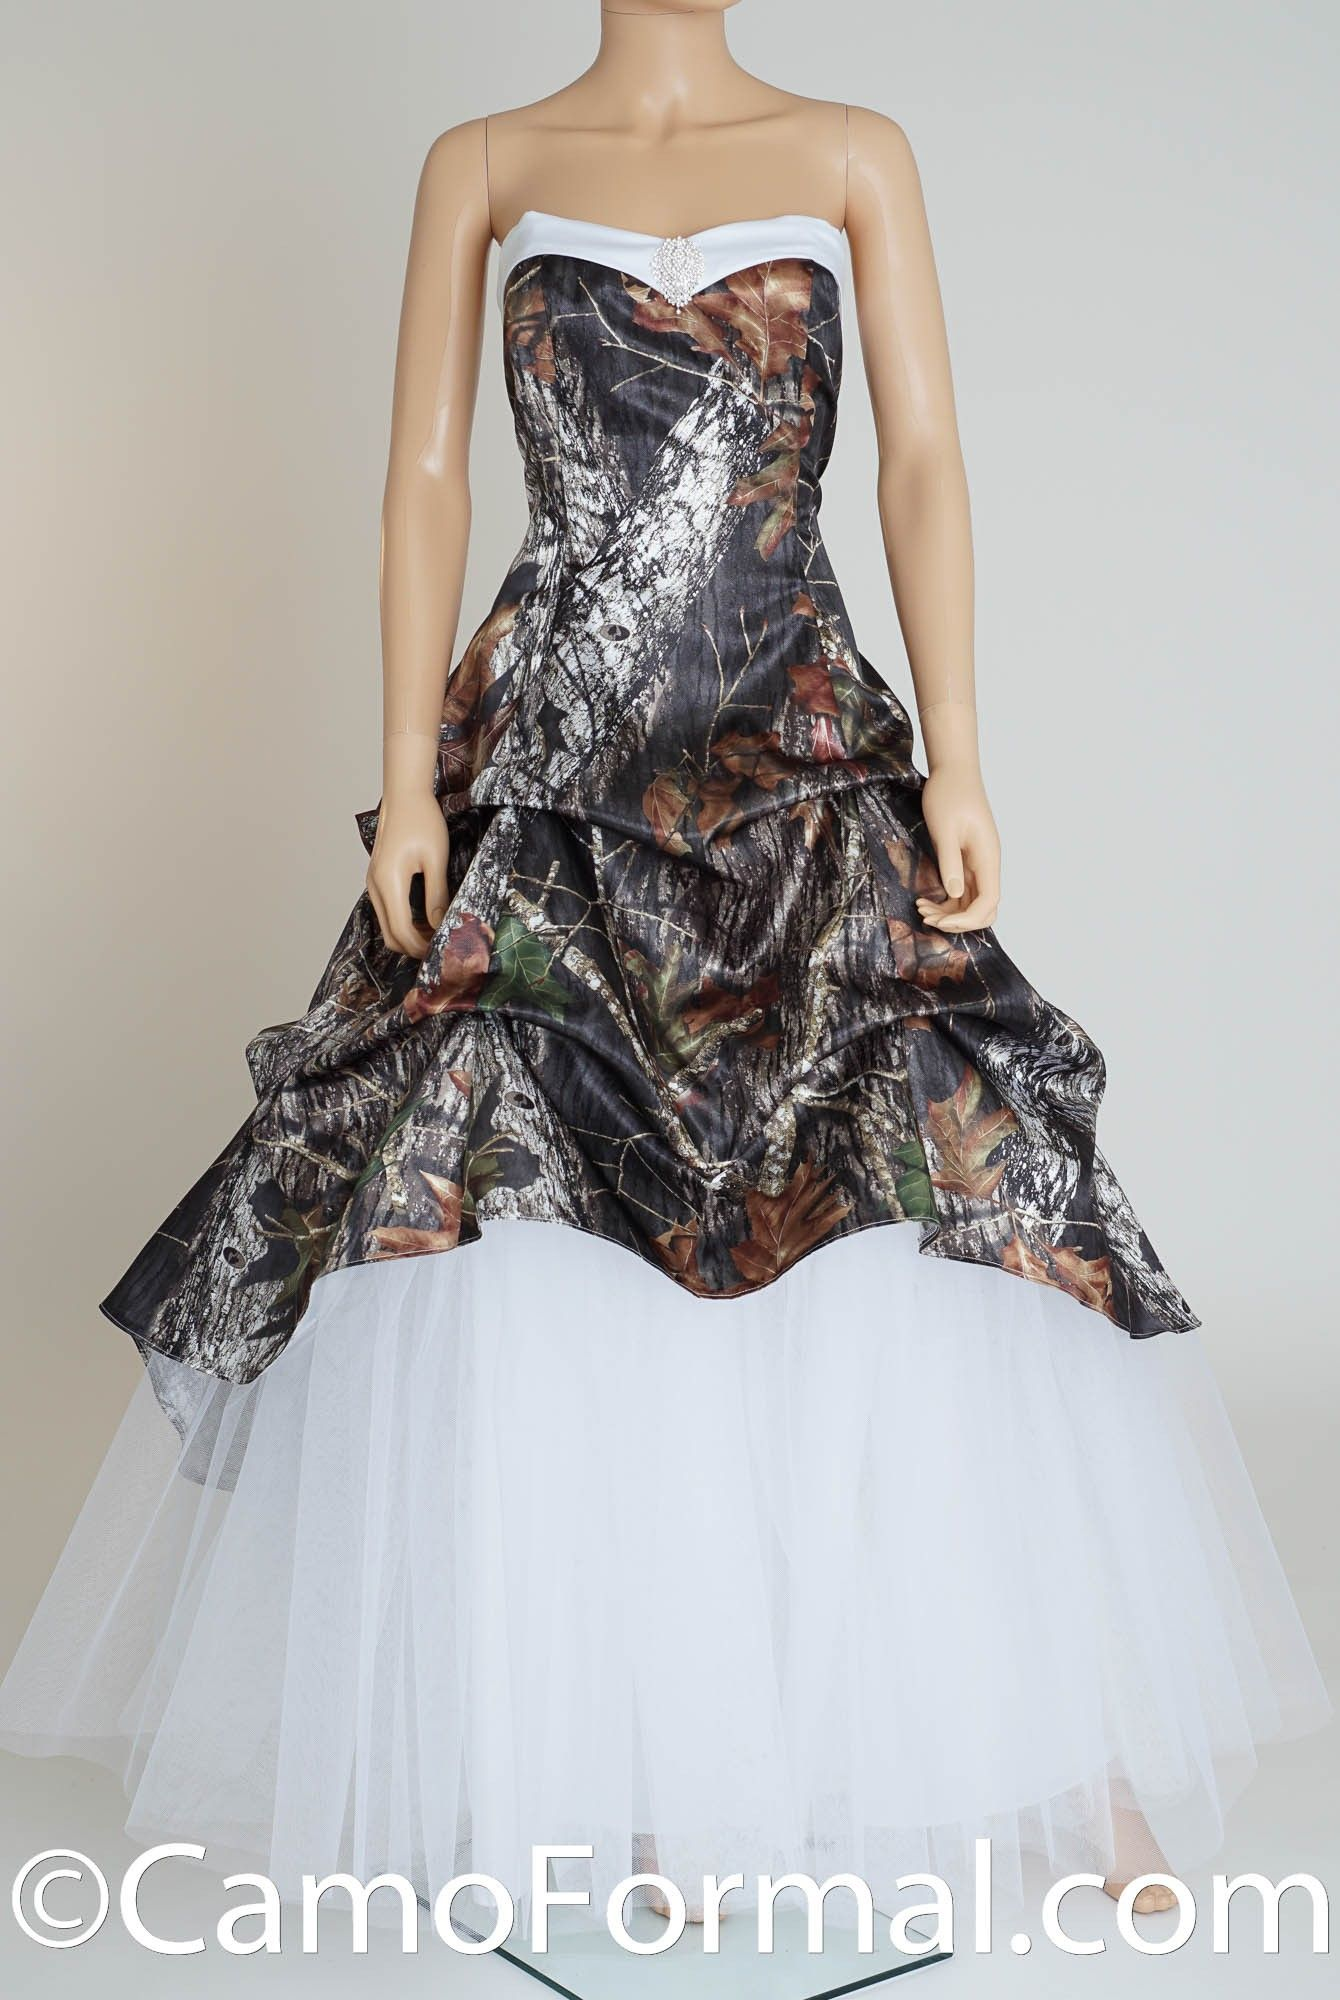 Realtree wedding dresses  Shown in Realtree APG and White Satin  Plus size Wedding Dresses